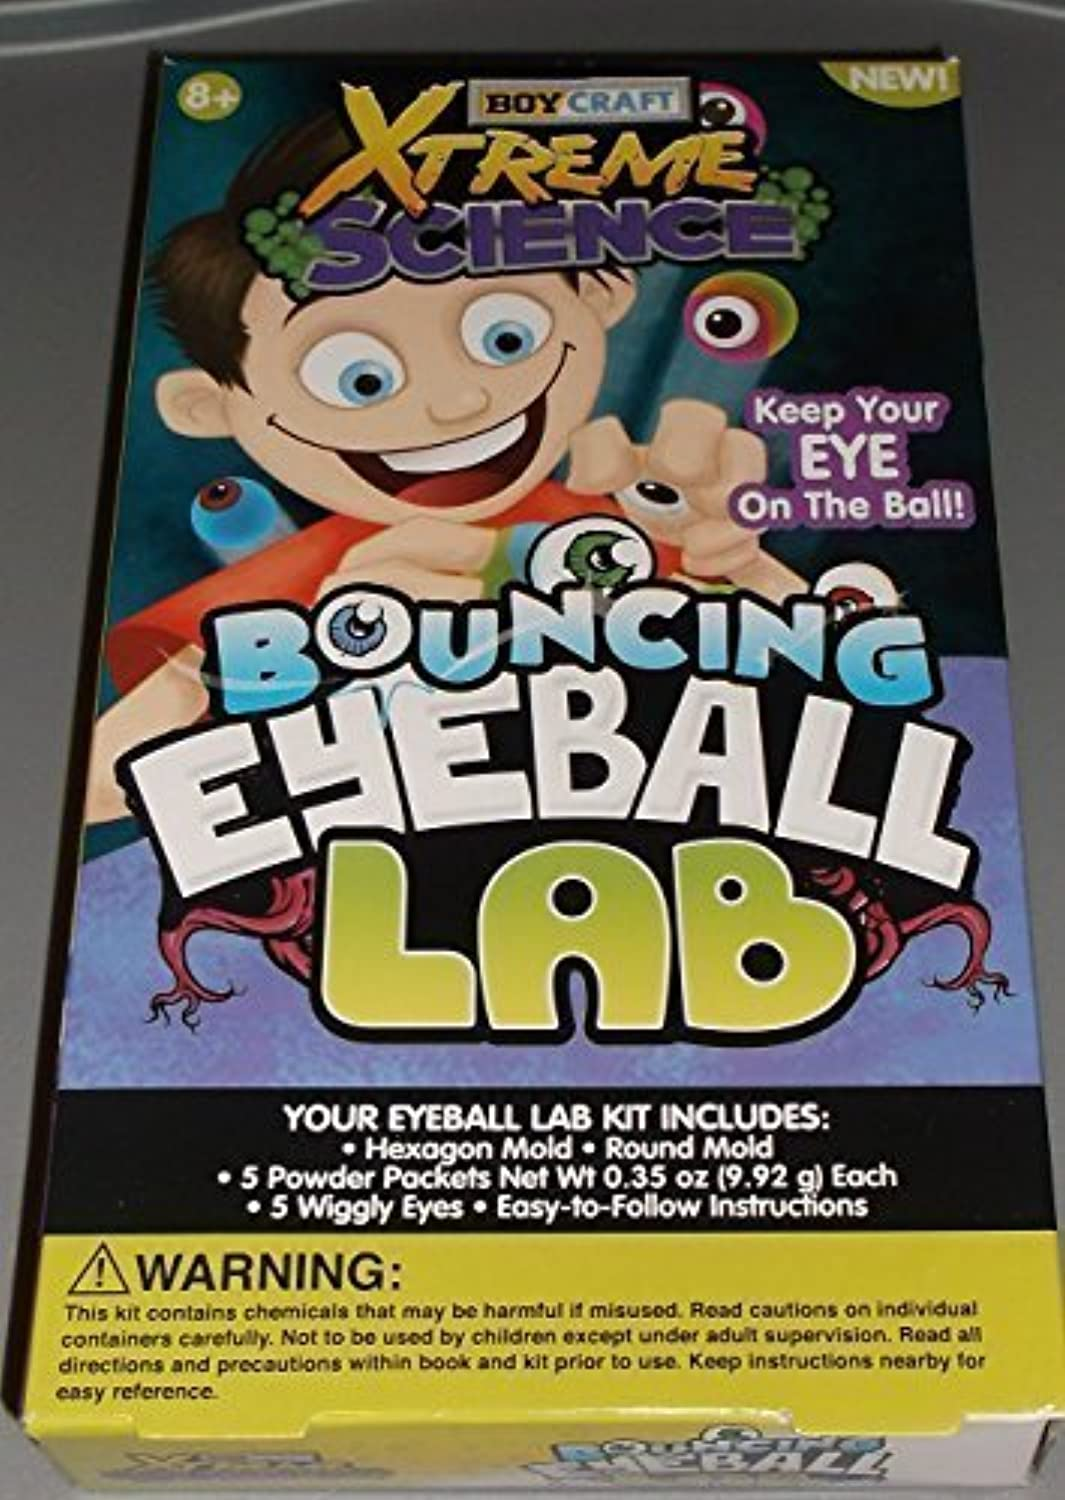 Boy Craft XTreme Science Bouncing Eyeball Lab Kit Makes 5 Bouncing Balls with Wiggly Eyes by XTreme Science